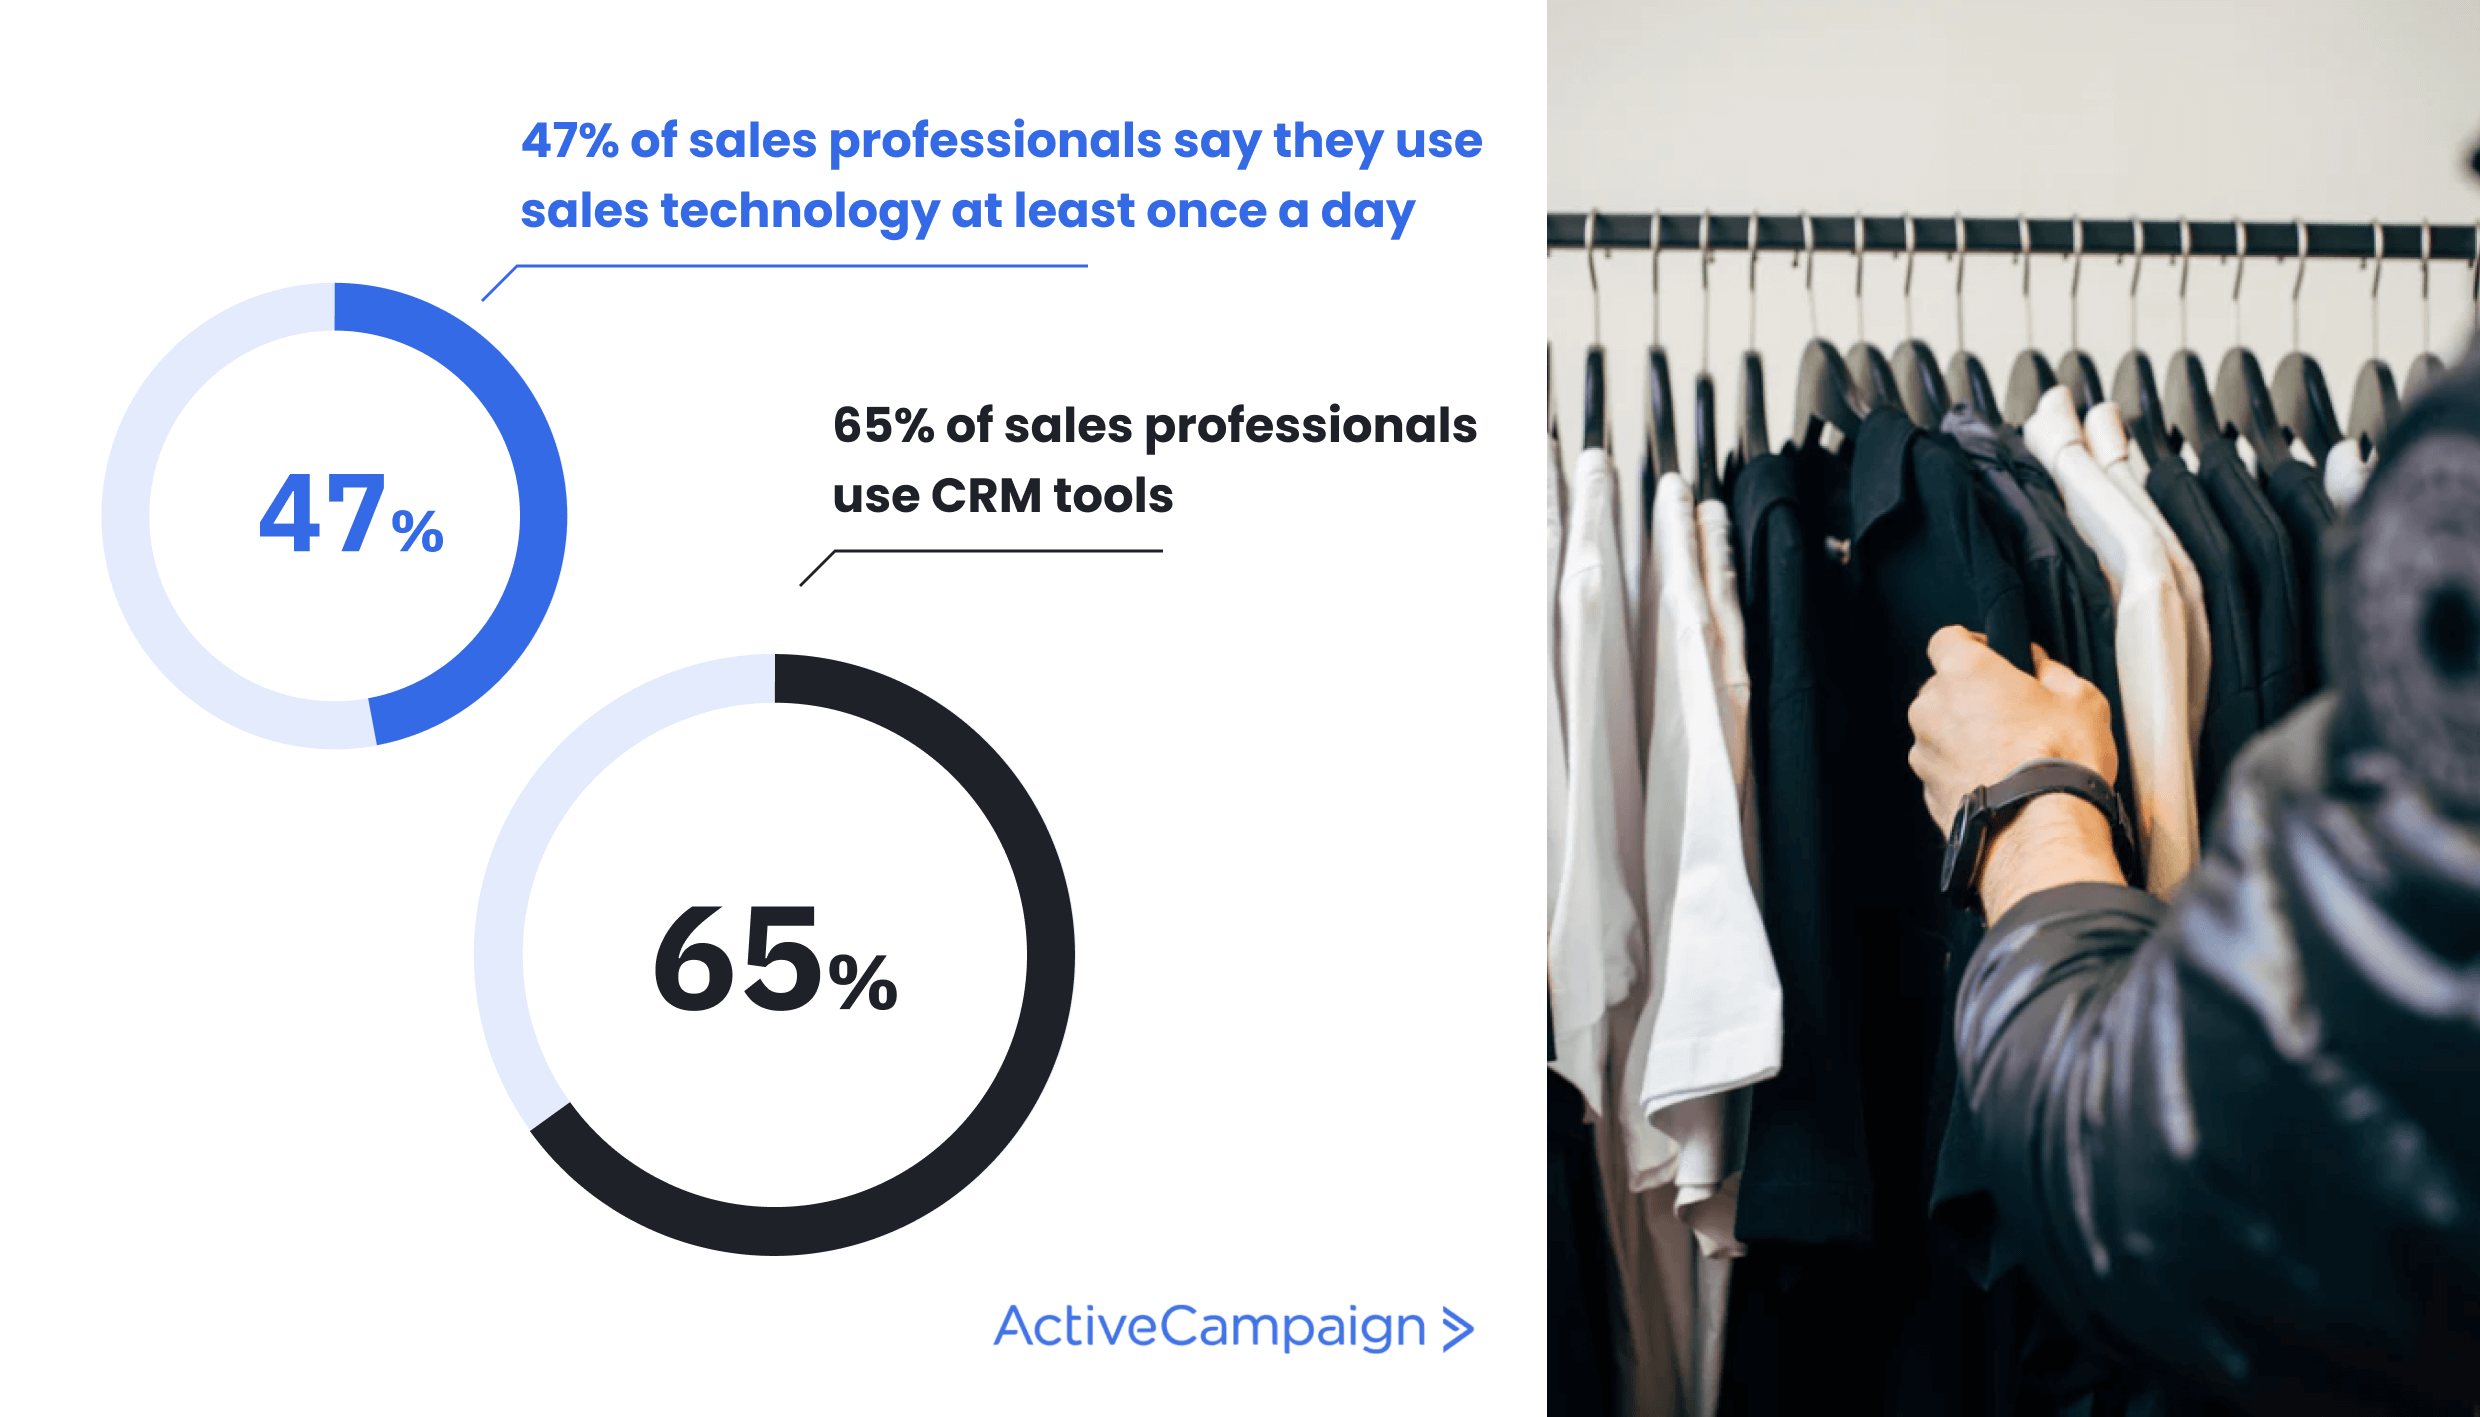 Graphic showing that 65% of salespeople use CRM tools, and 47% use sales technology daily.